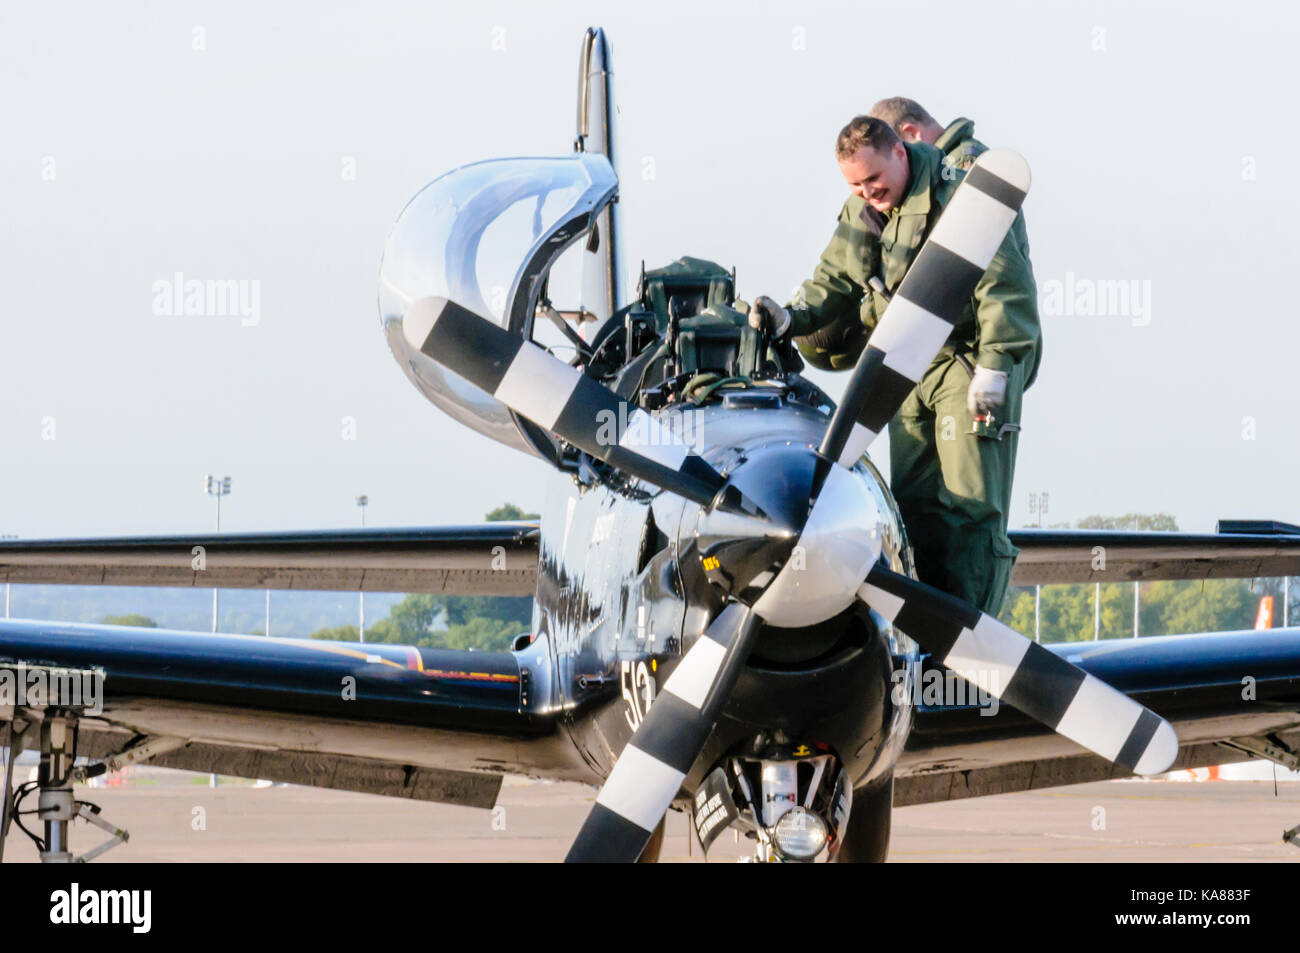 RAF Aldergrove, Northern Ireland. 25/09/2017 - Pilot and trainee disembark a Tucano training aircraft from 72 (R) - Stock Image